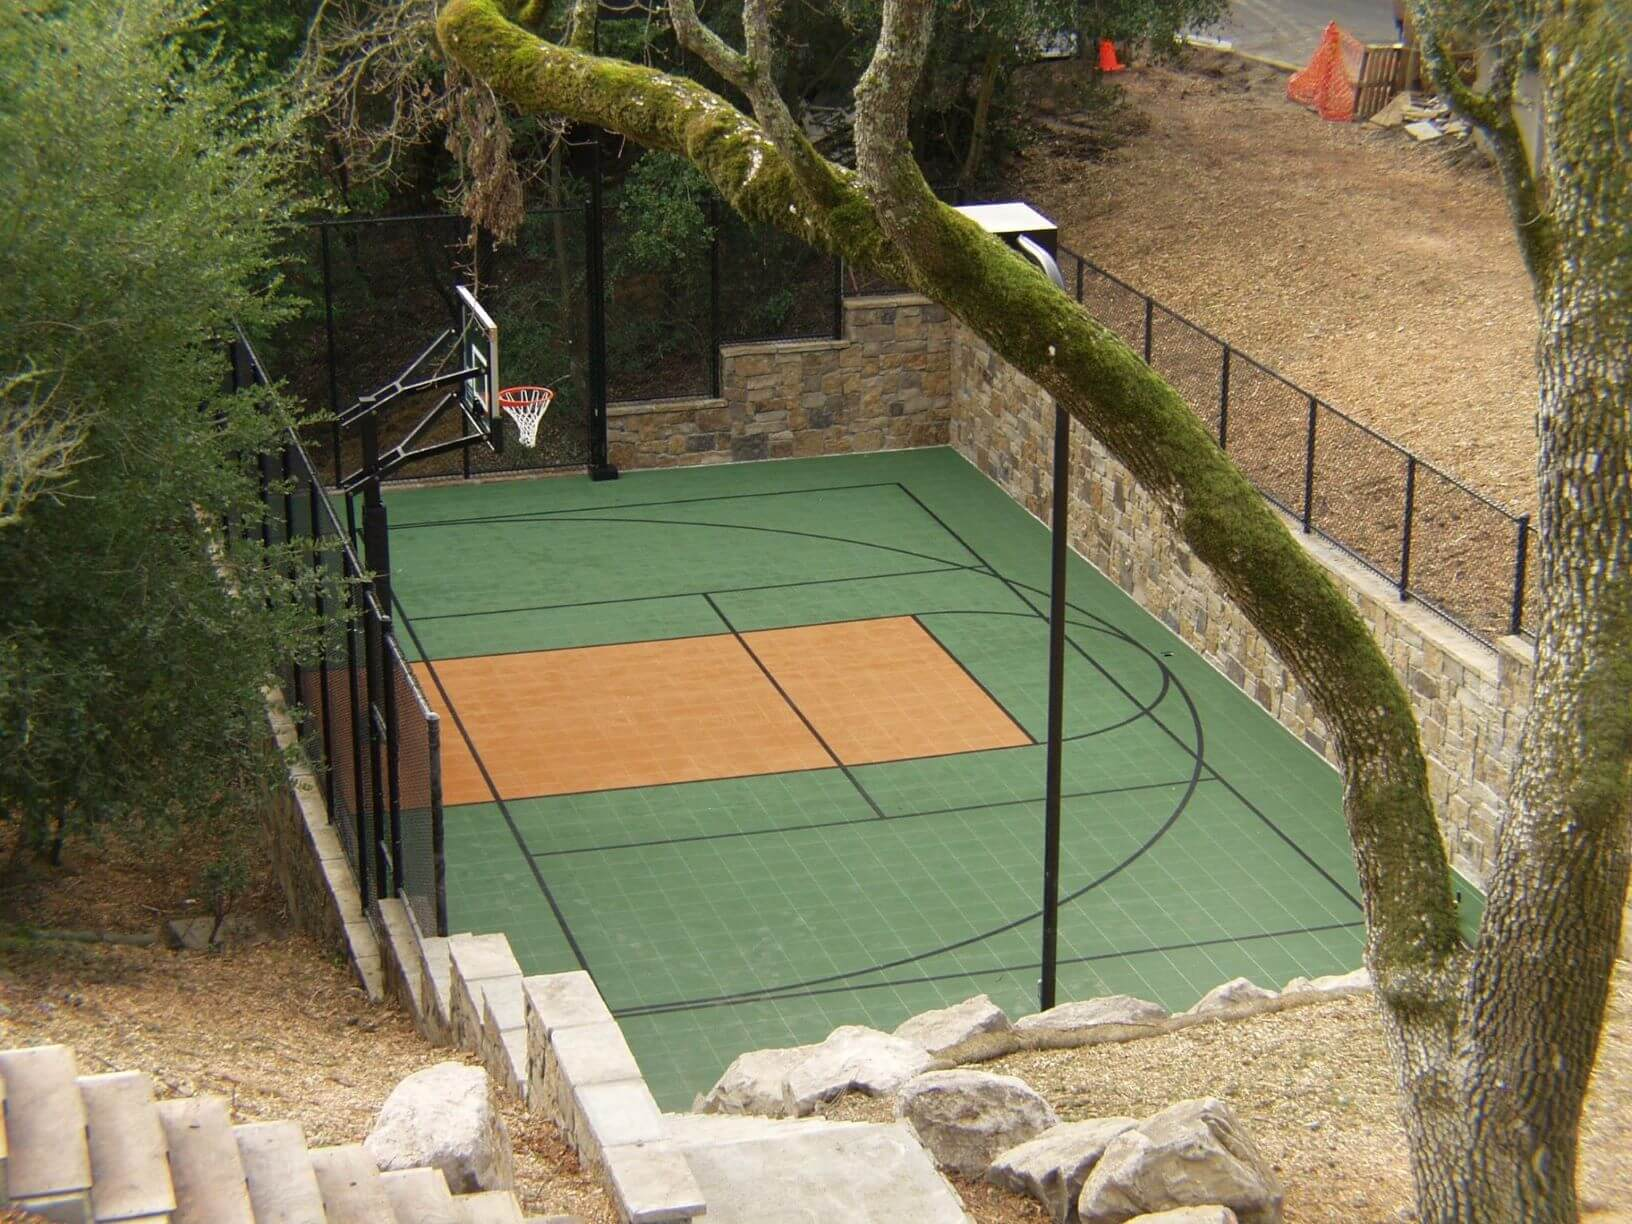 Backyard Custom Sport Court Multi Court Basketball Tennis Pickleball Court Builder Retaining Wall Landscape Backyard Design